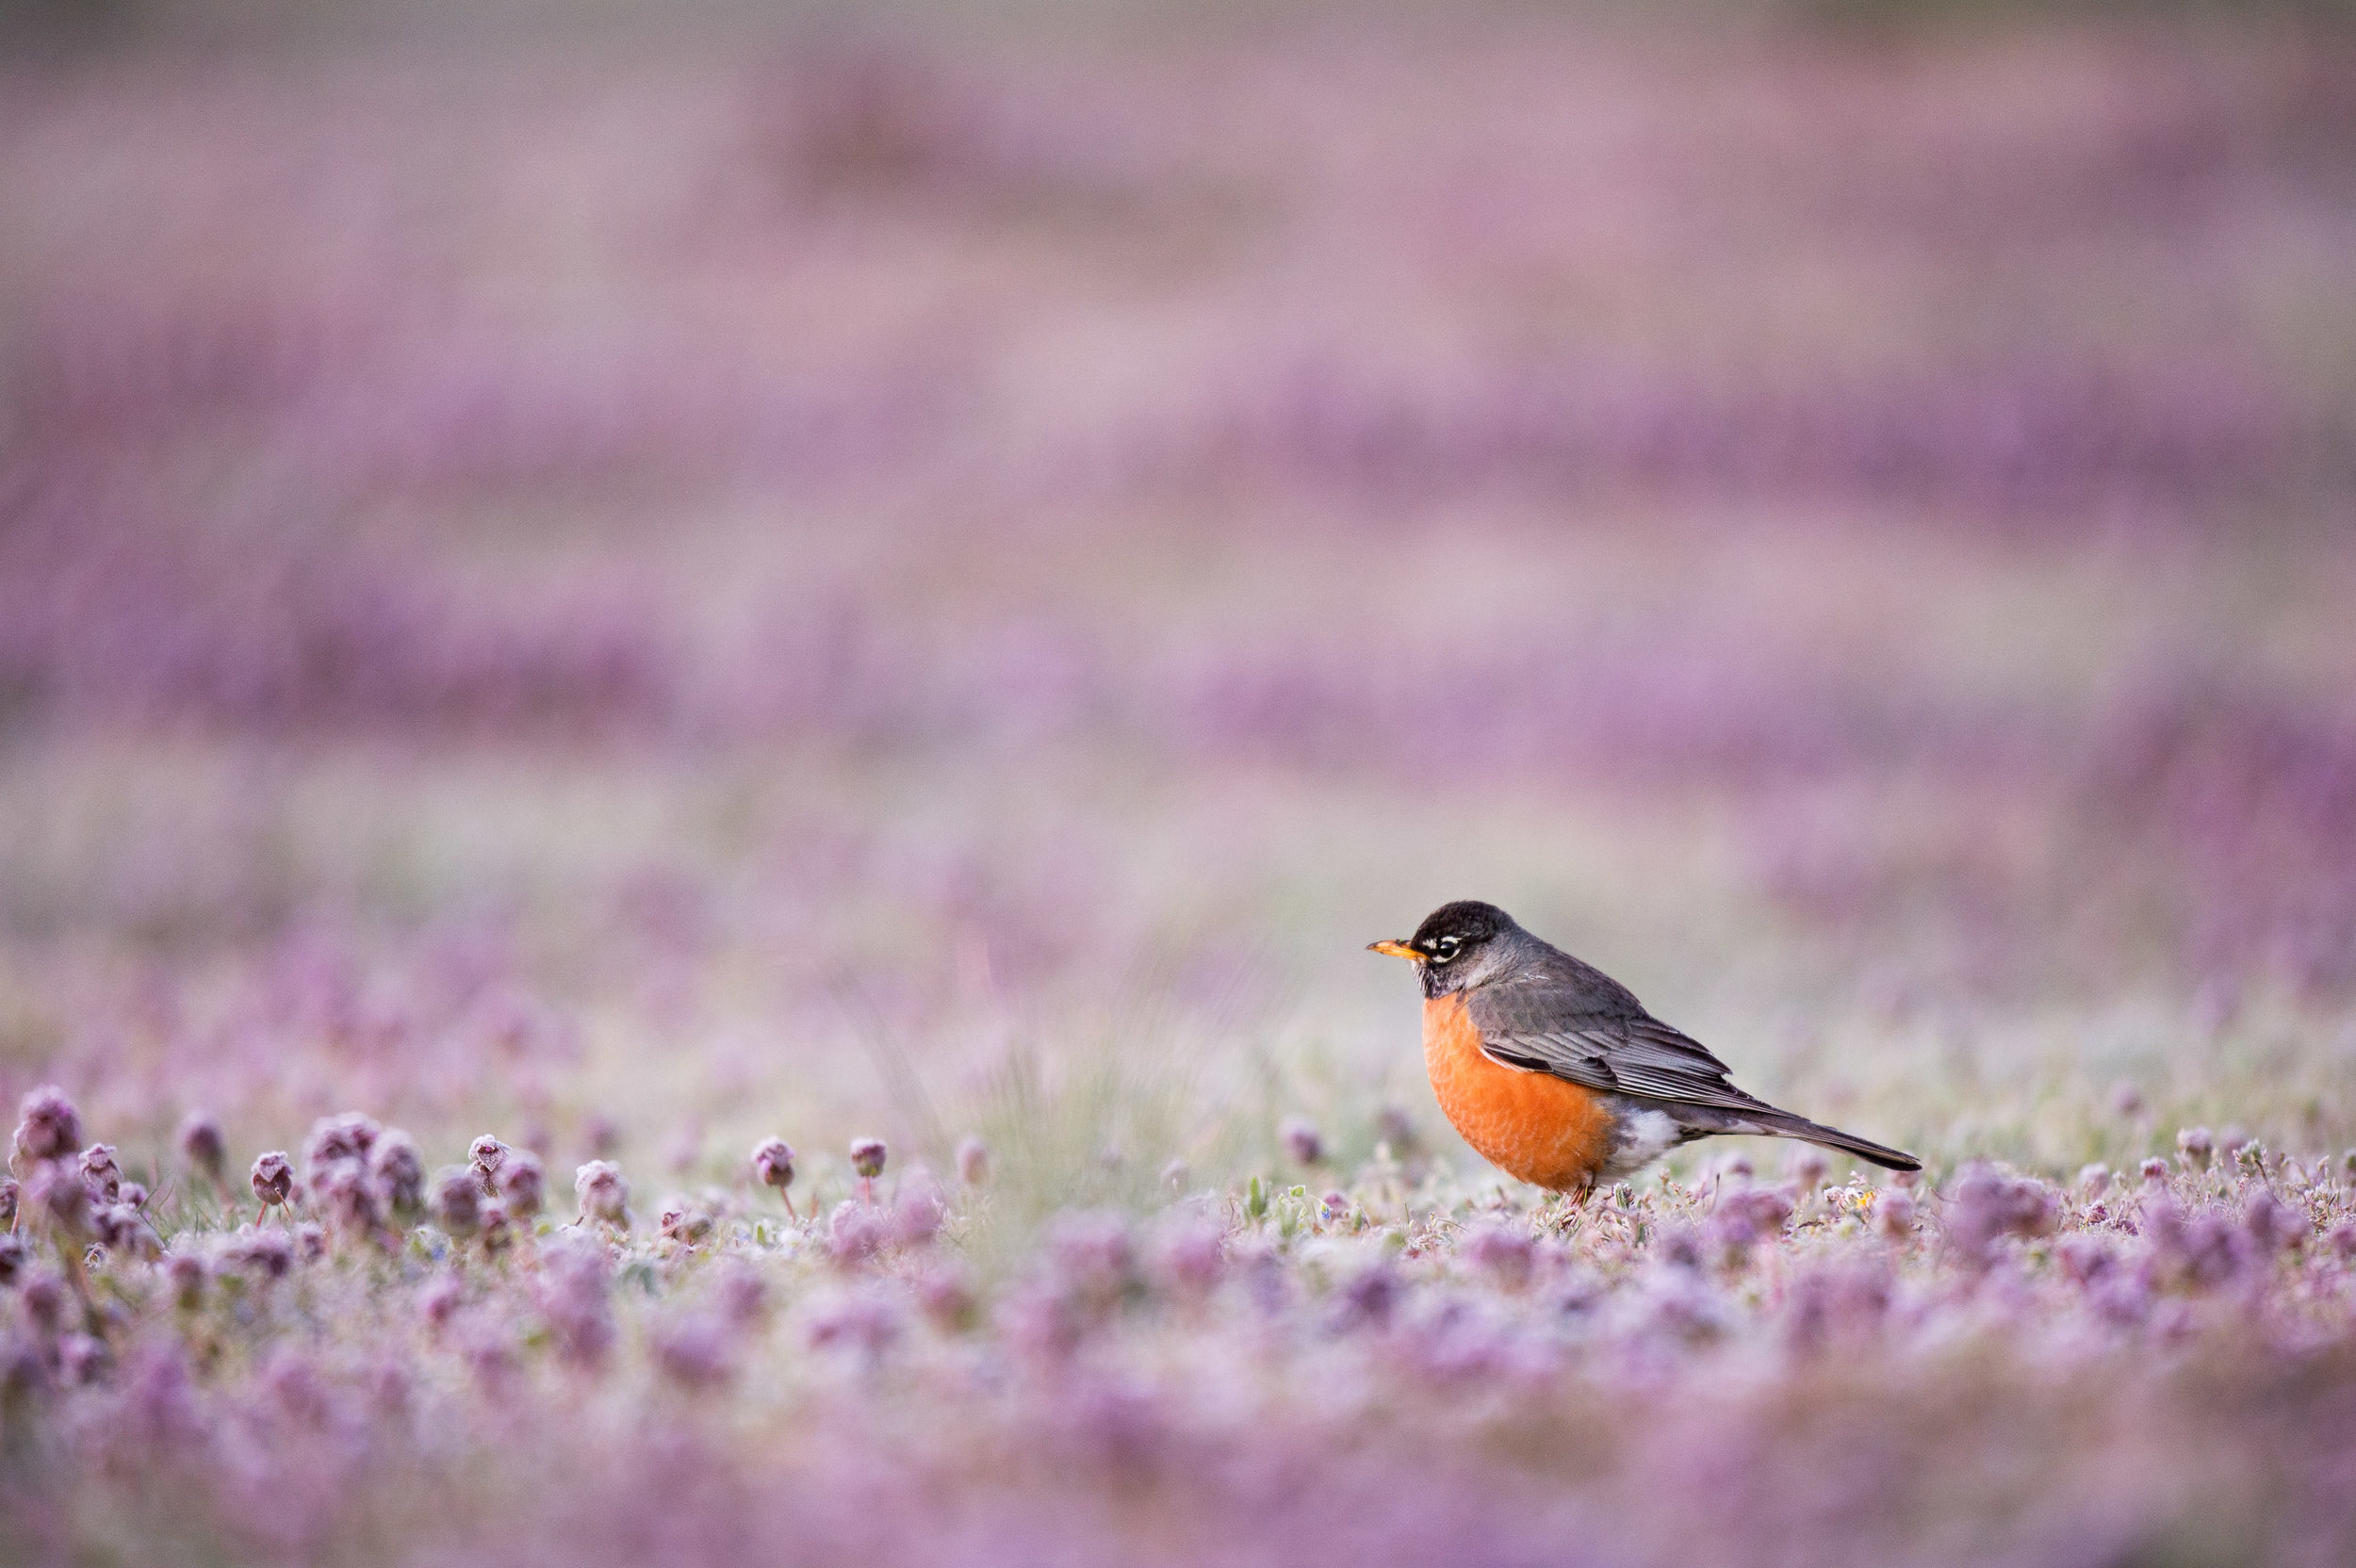 An American Robin searches for food in a field covered in small purple flowers.